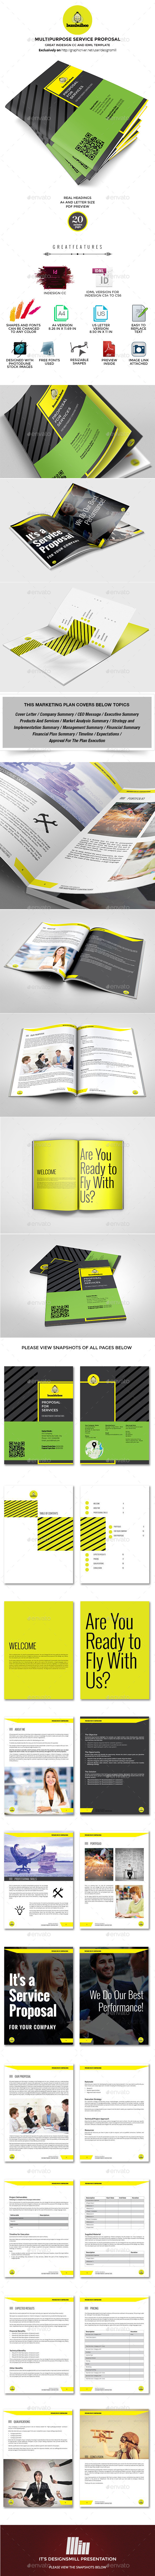 GraphicRiver Bumblebee Service Proposal Template 10003989